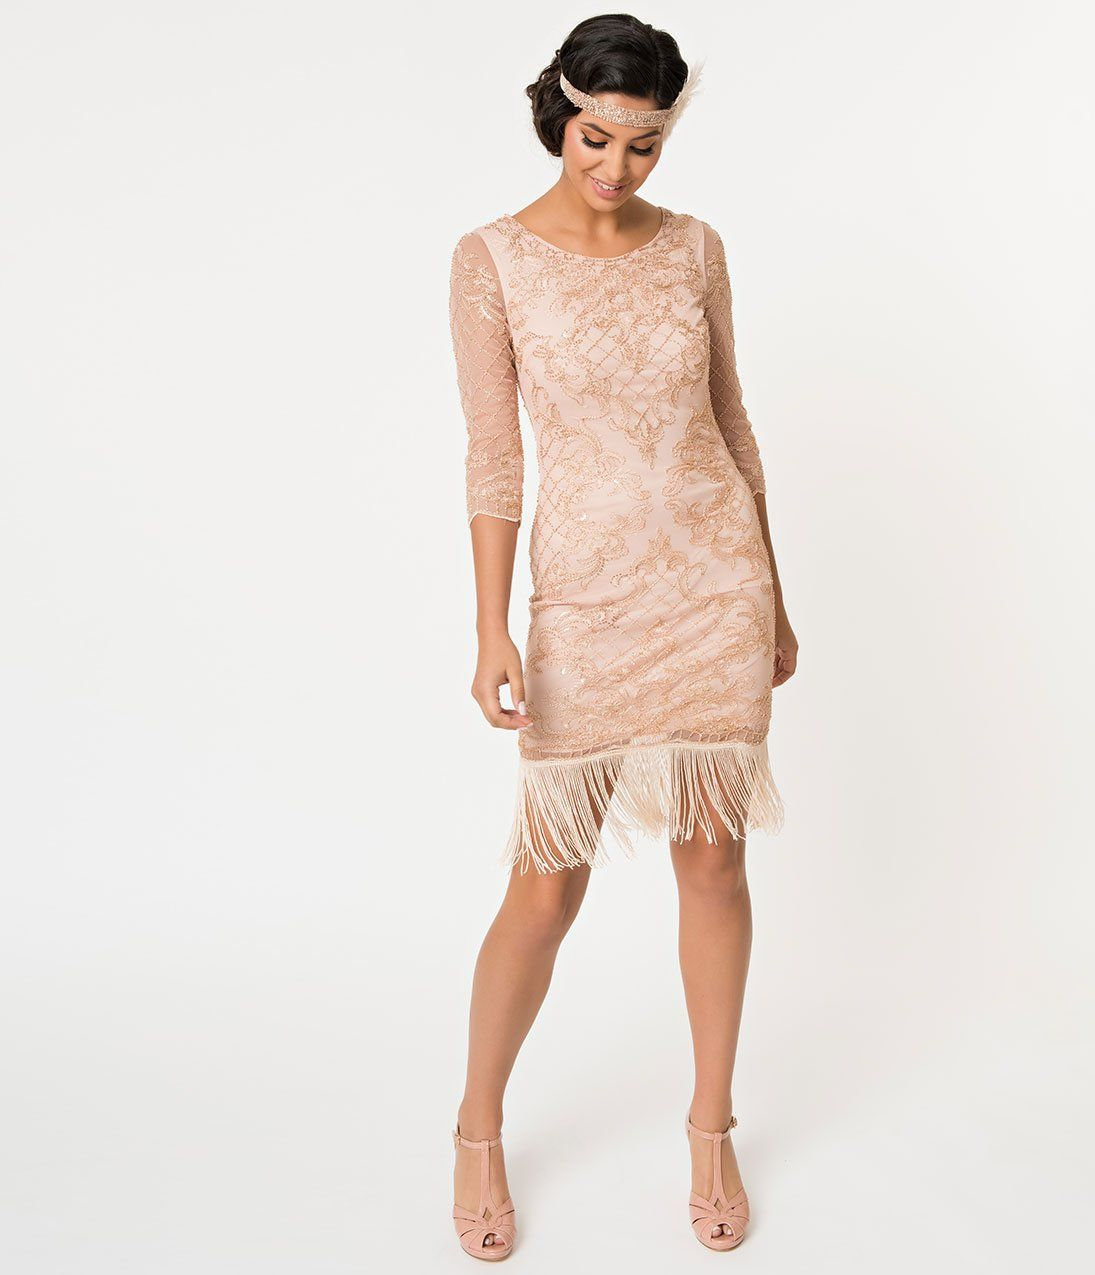 1920s Evening Dresses Formal Gowns 1920s Style Rose Pink Gold Beaded Sleeved Fringe Flapper Dress 110 00 A Flapper Dress 1920s Fashion Fringe Flapper Dress [ 1275 x 1095 Pixel ]